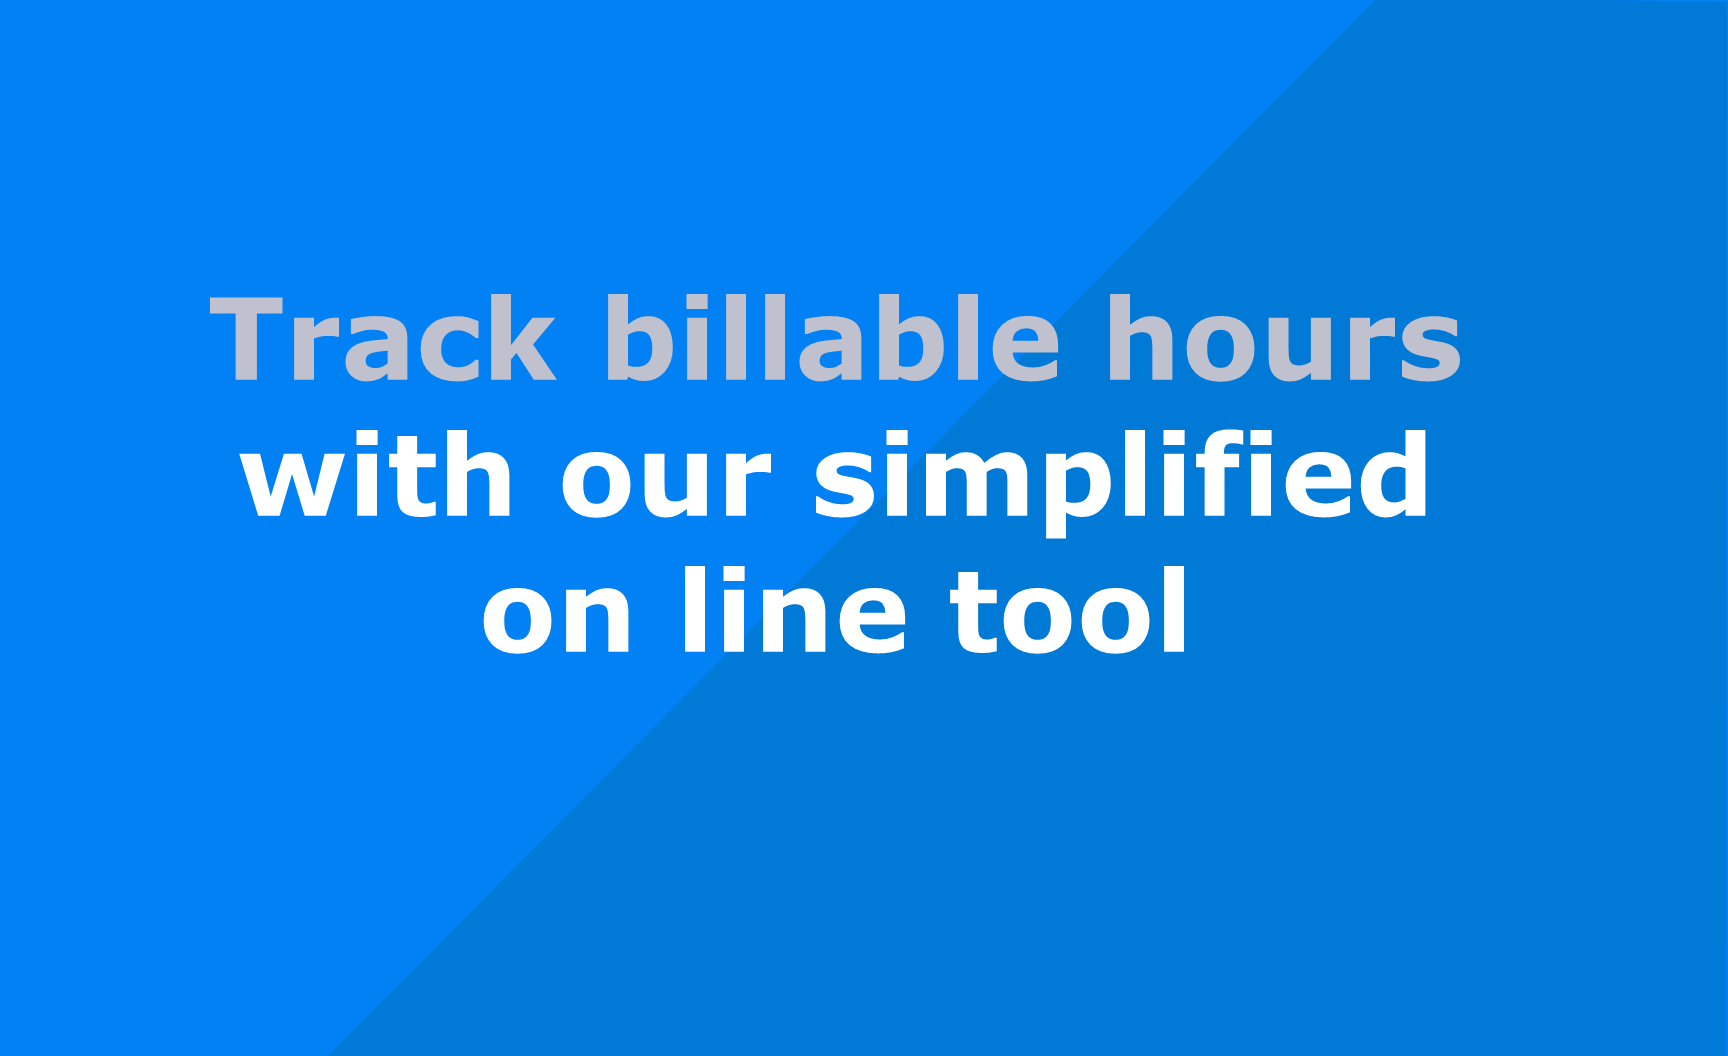 Track billable hours with our simplified free on line tool